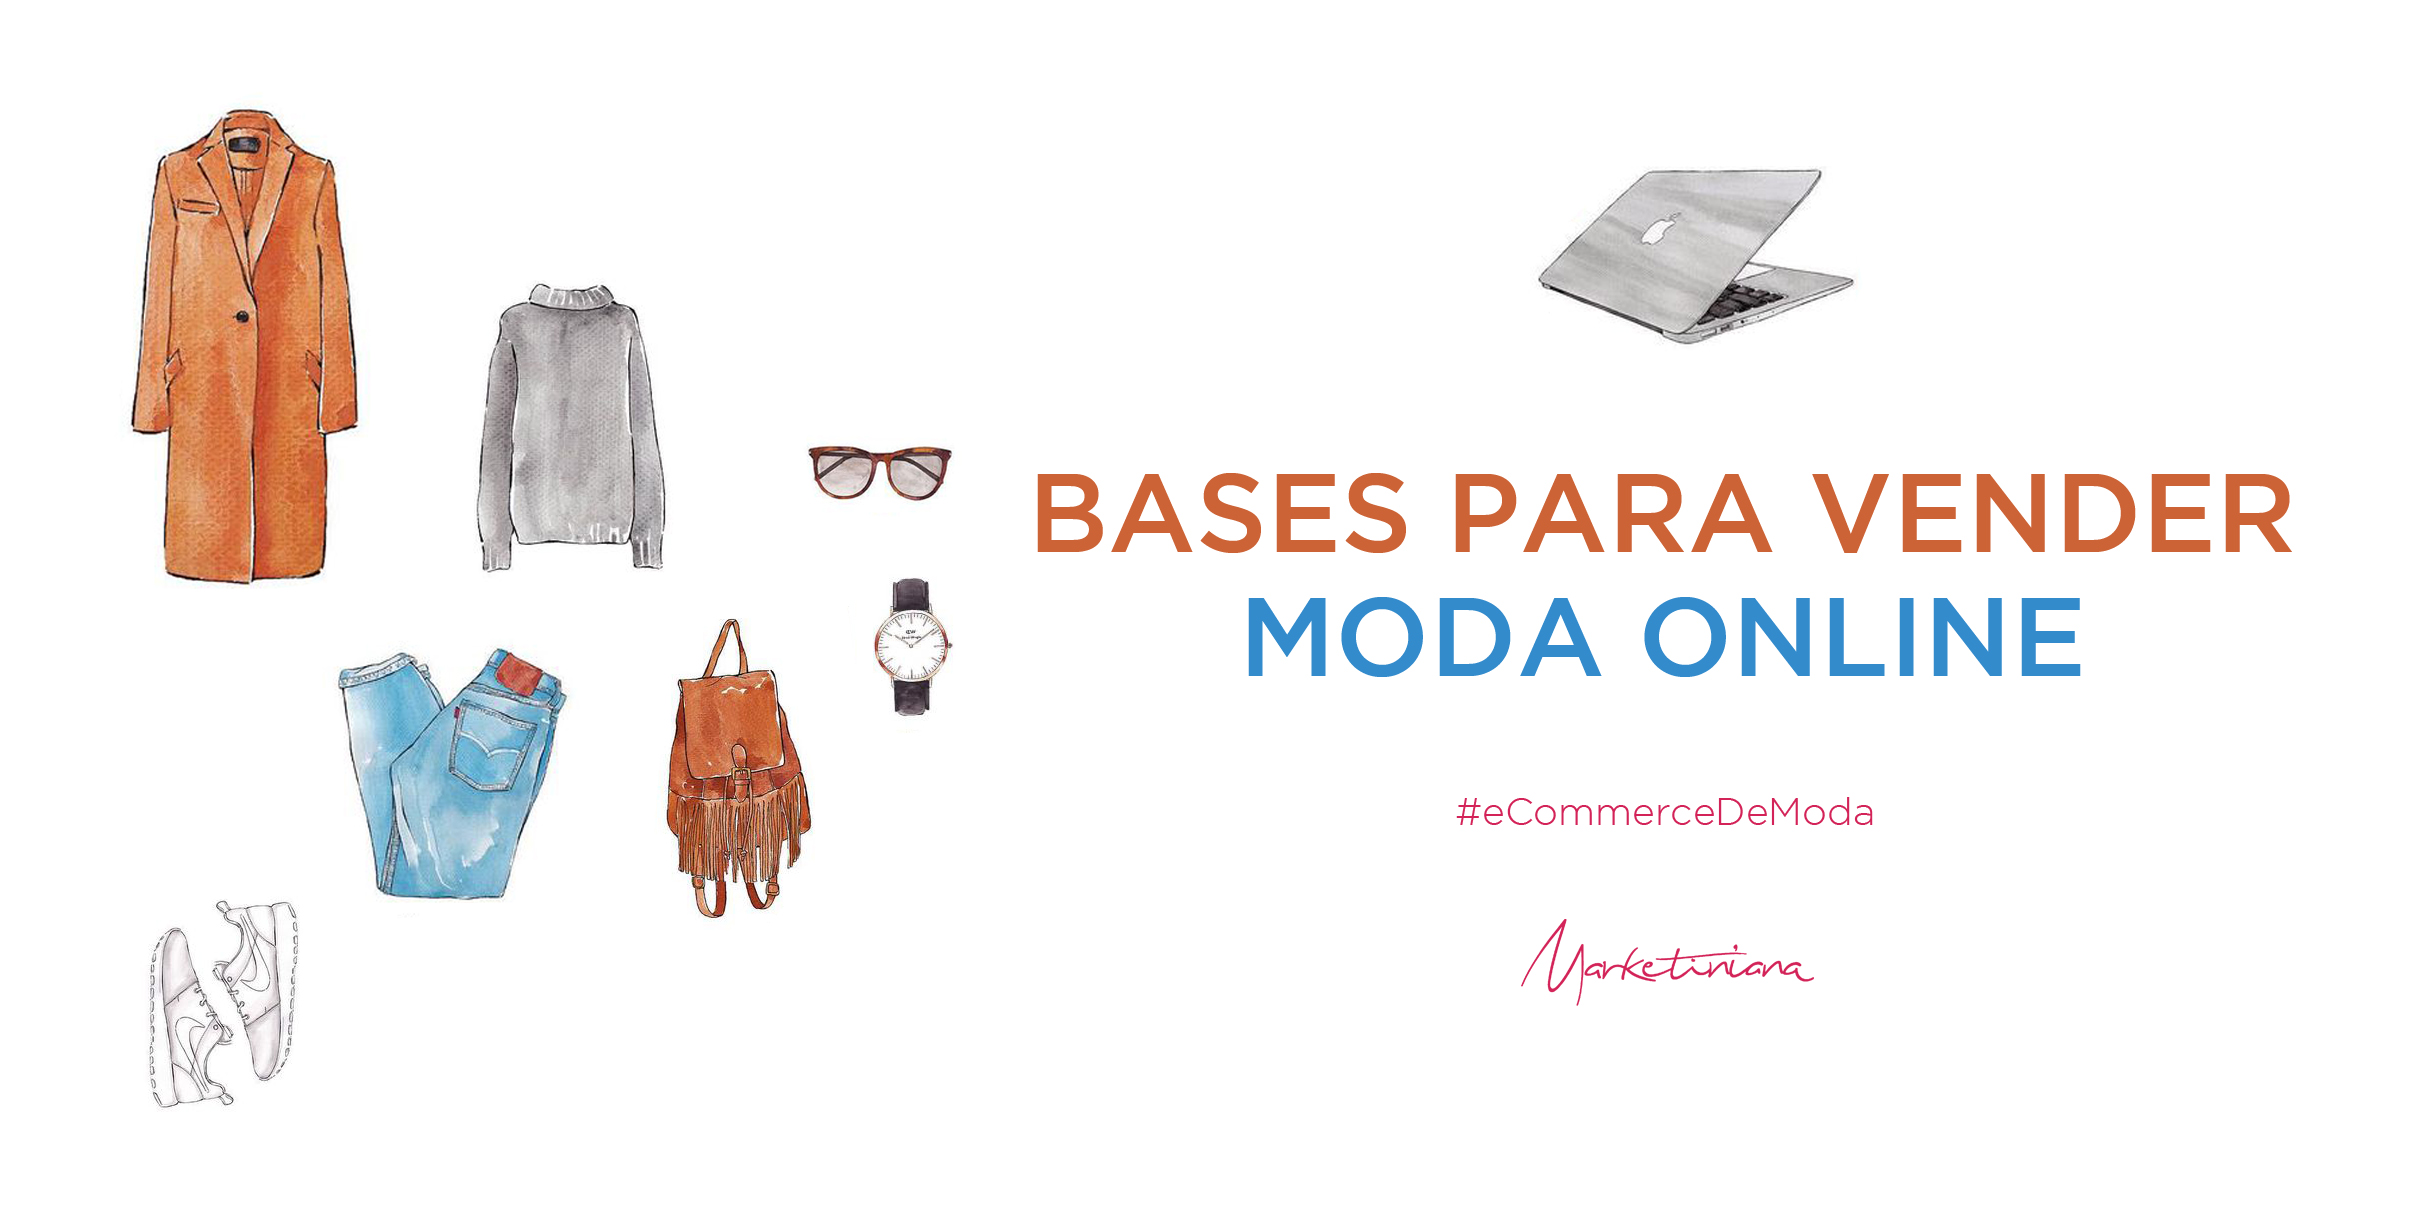 Bases-para-vender-moda-online-portada-marketiniana.